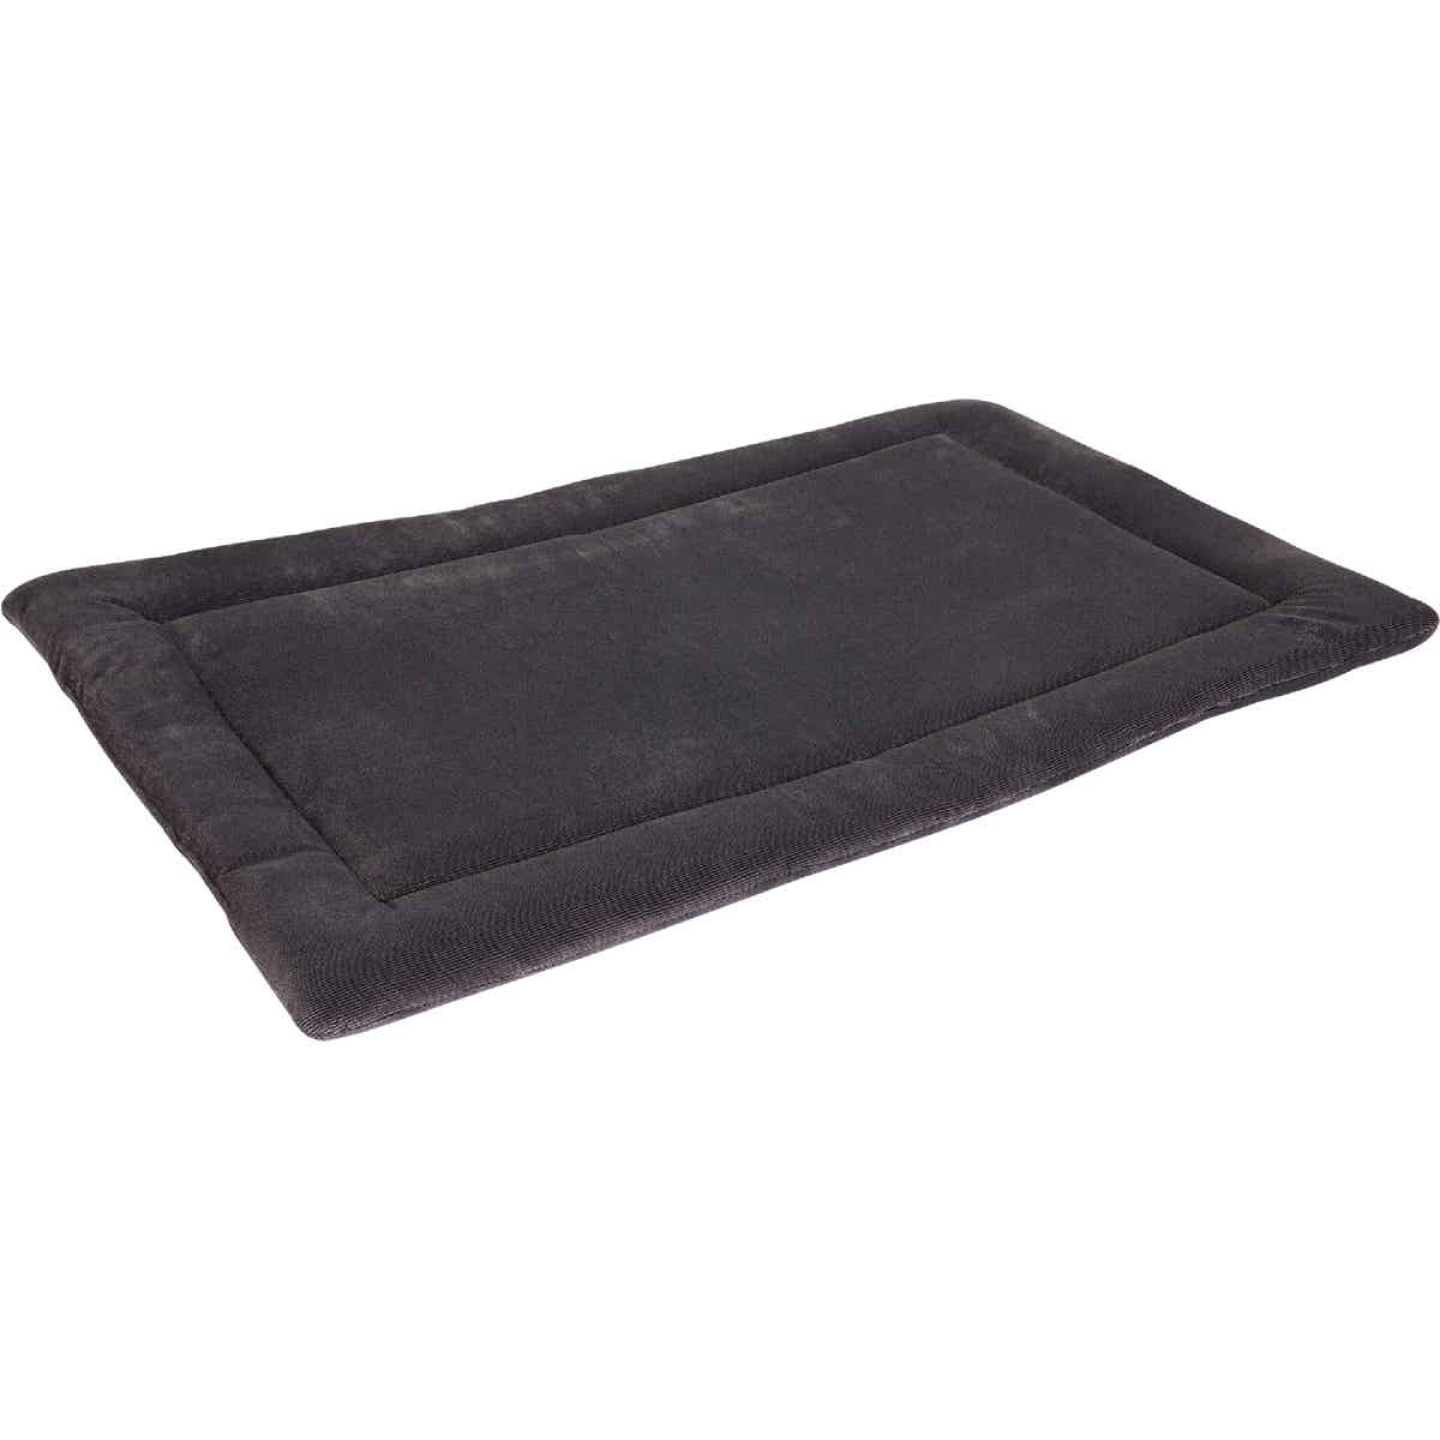 Petmate Aspen Pet 41.5 In. W. x 26.5 In. L. Woven Plush/Polyester Batting Kennel Mat Dog Bed Image 1